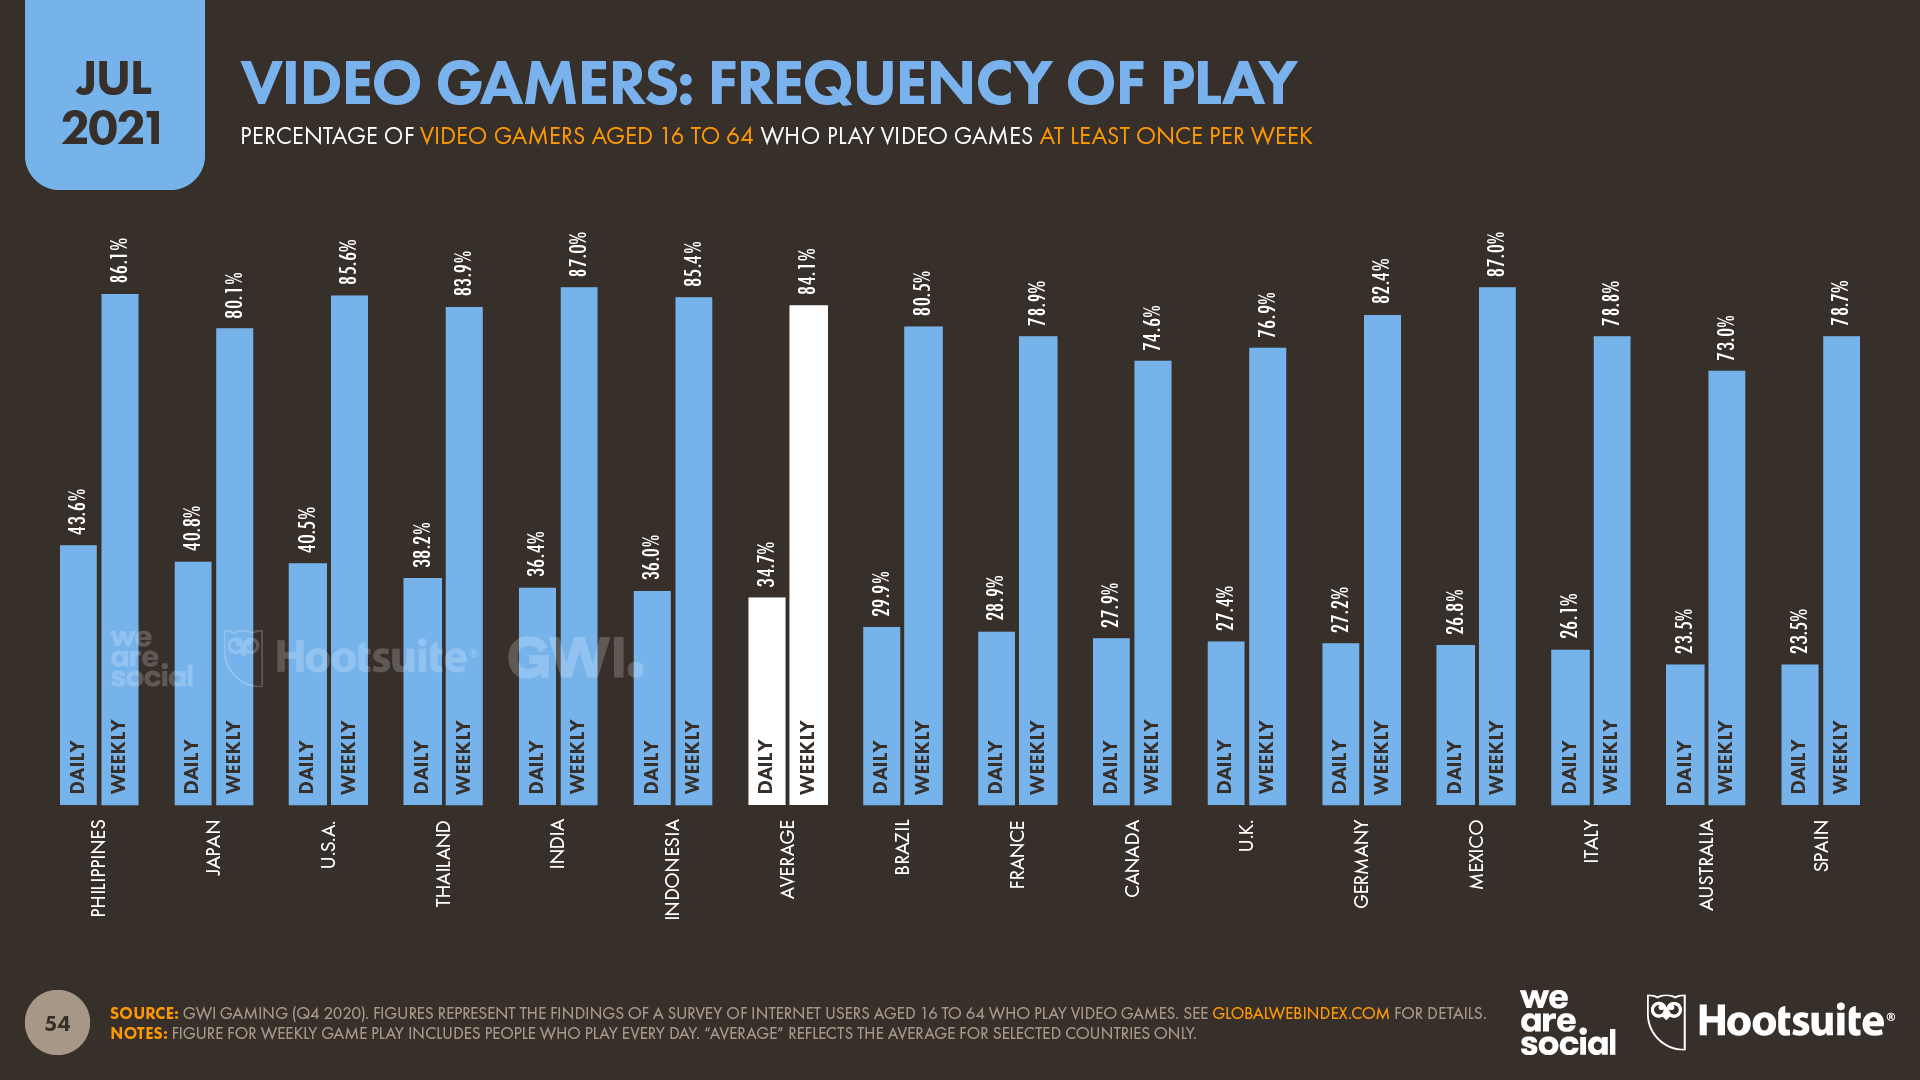 chart showing video gamers frequency of play as of July 2021